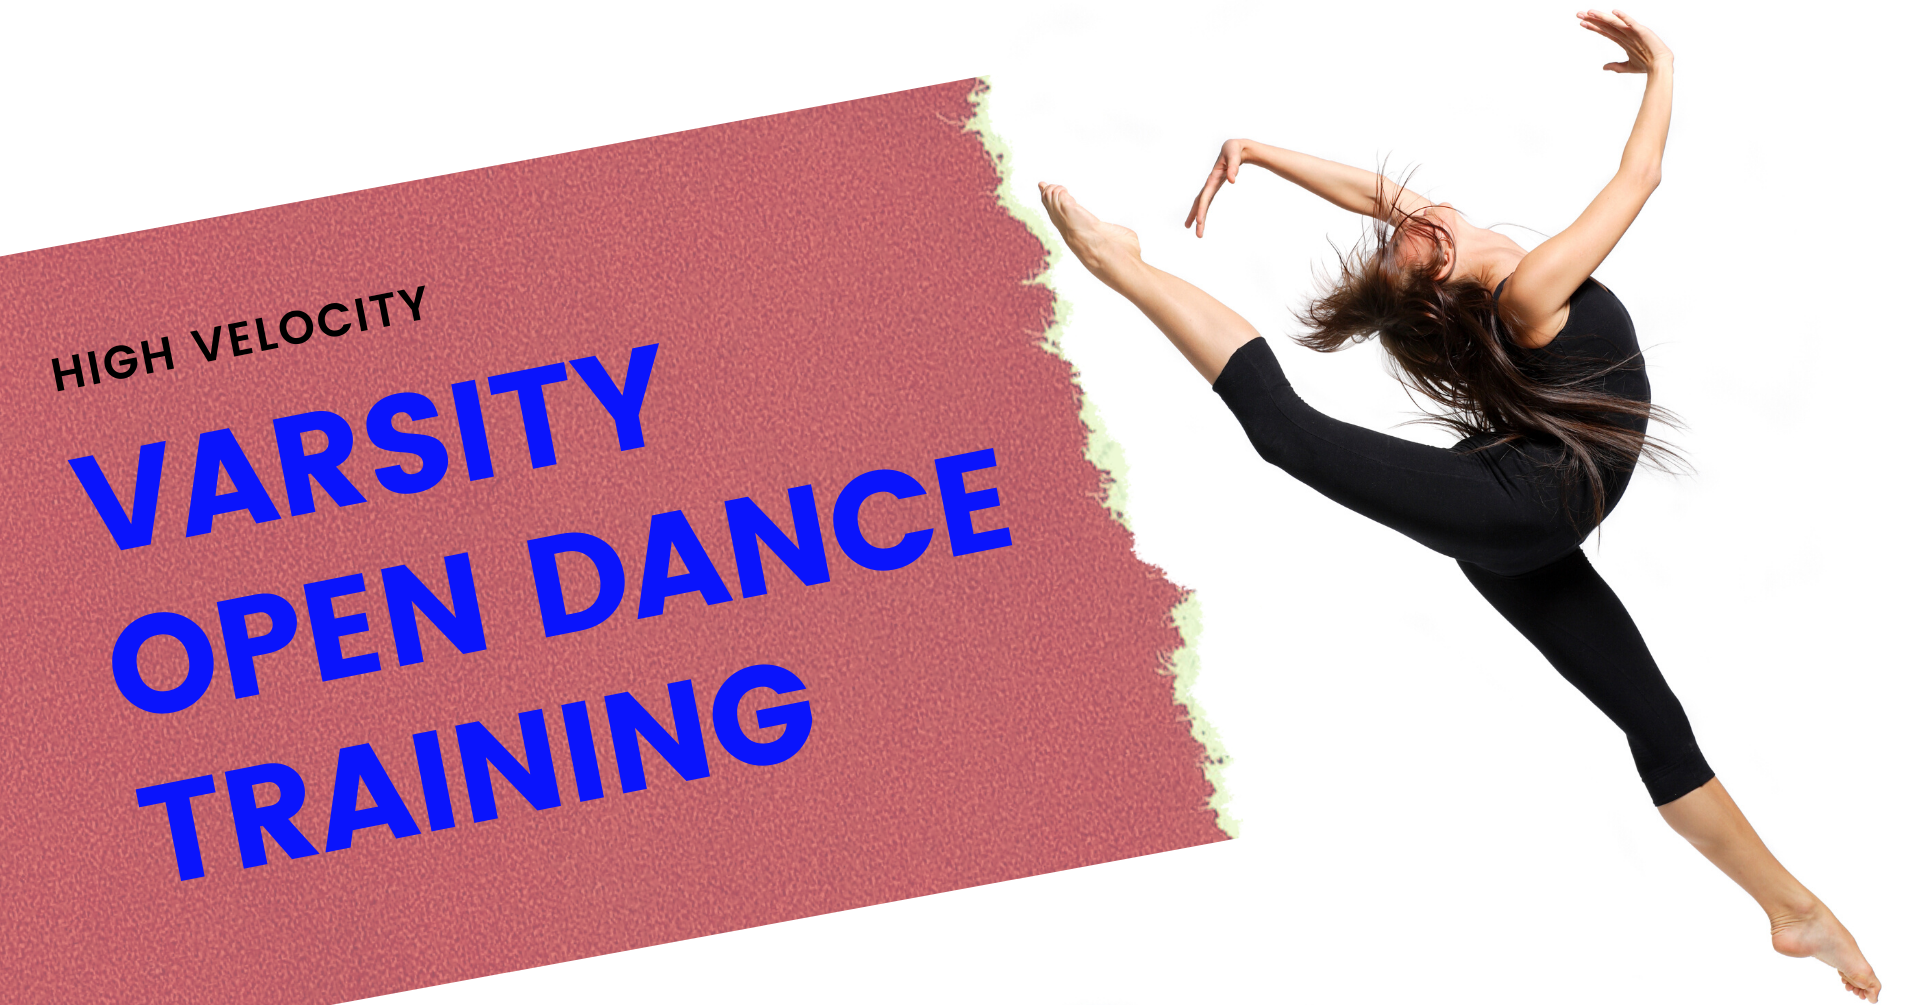 High Velocity Varsity | Open Dance Training